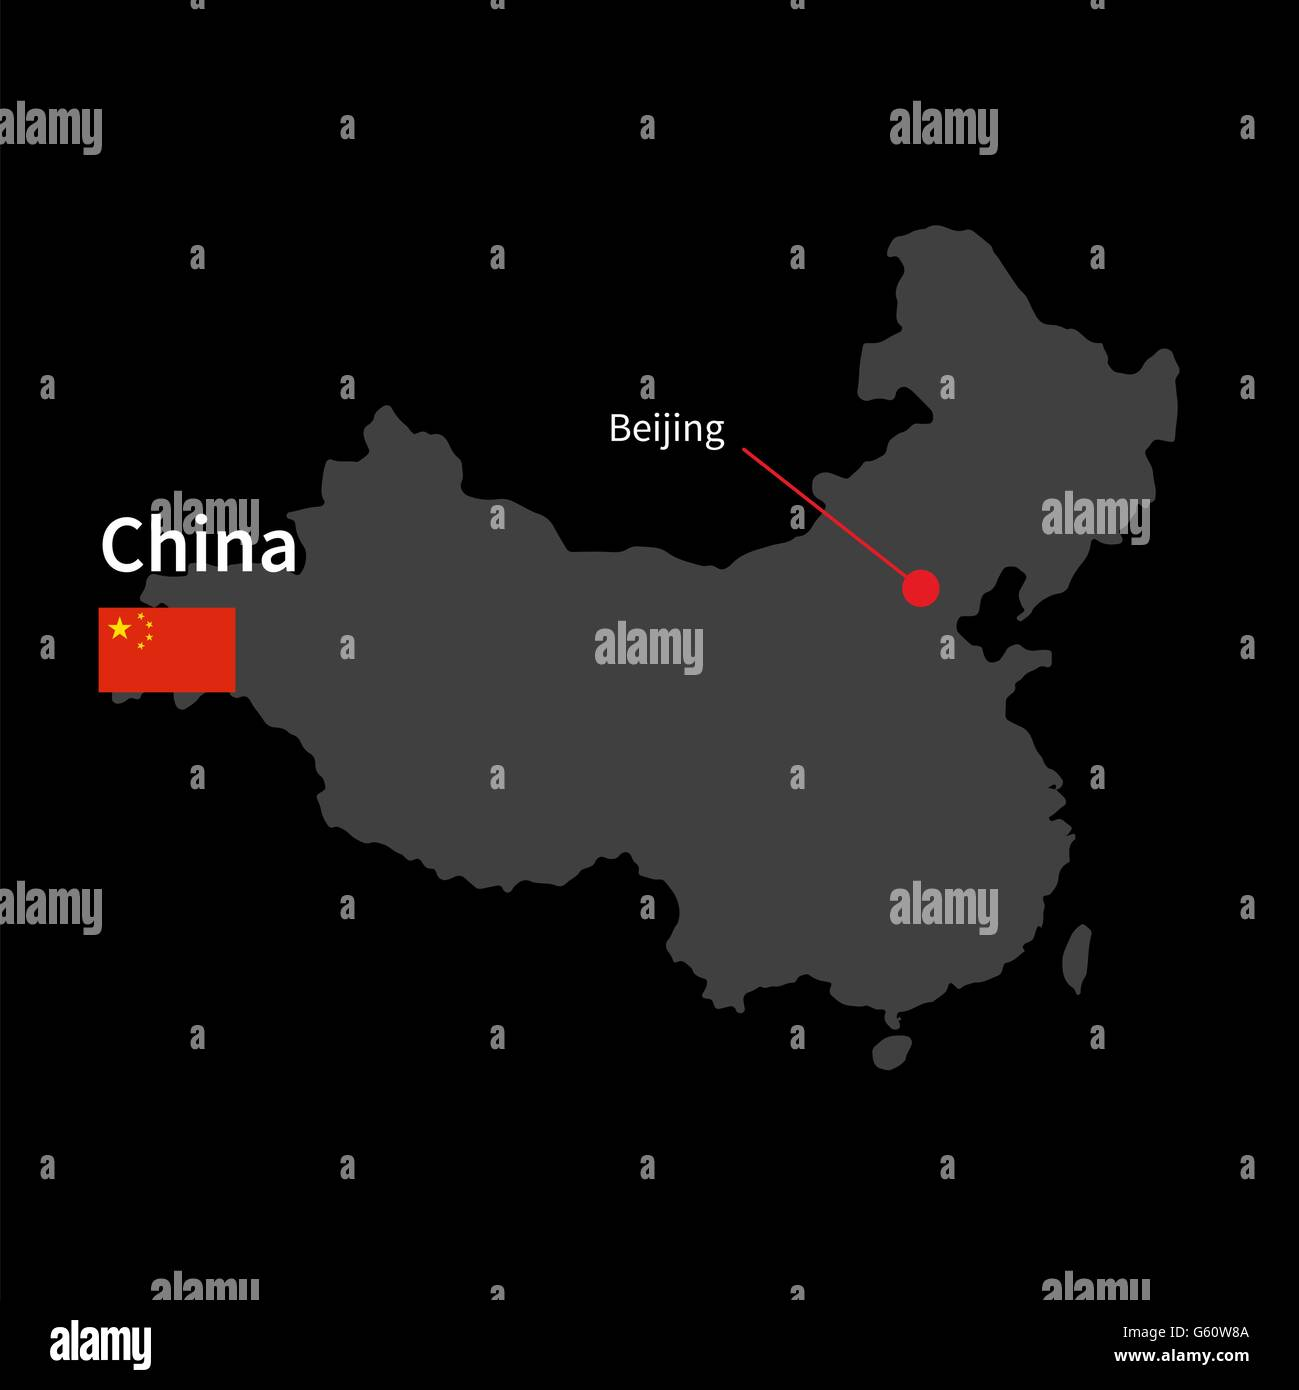 Detailed map of China and capital city Beijing with flag on black background - Stock Image